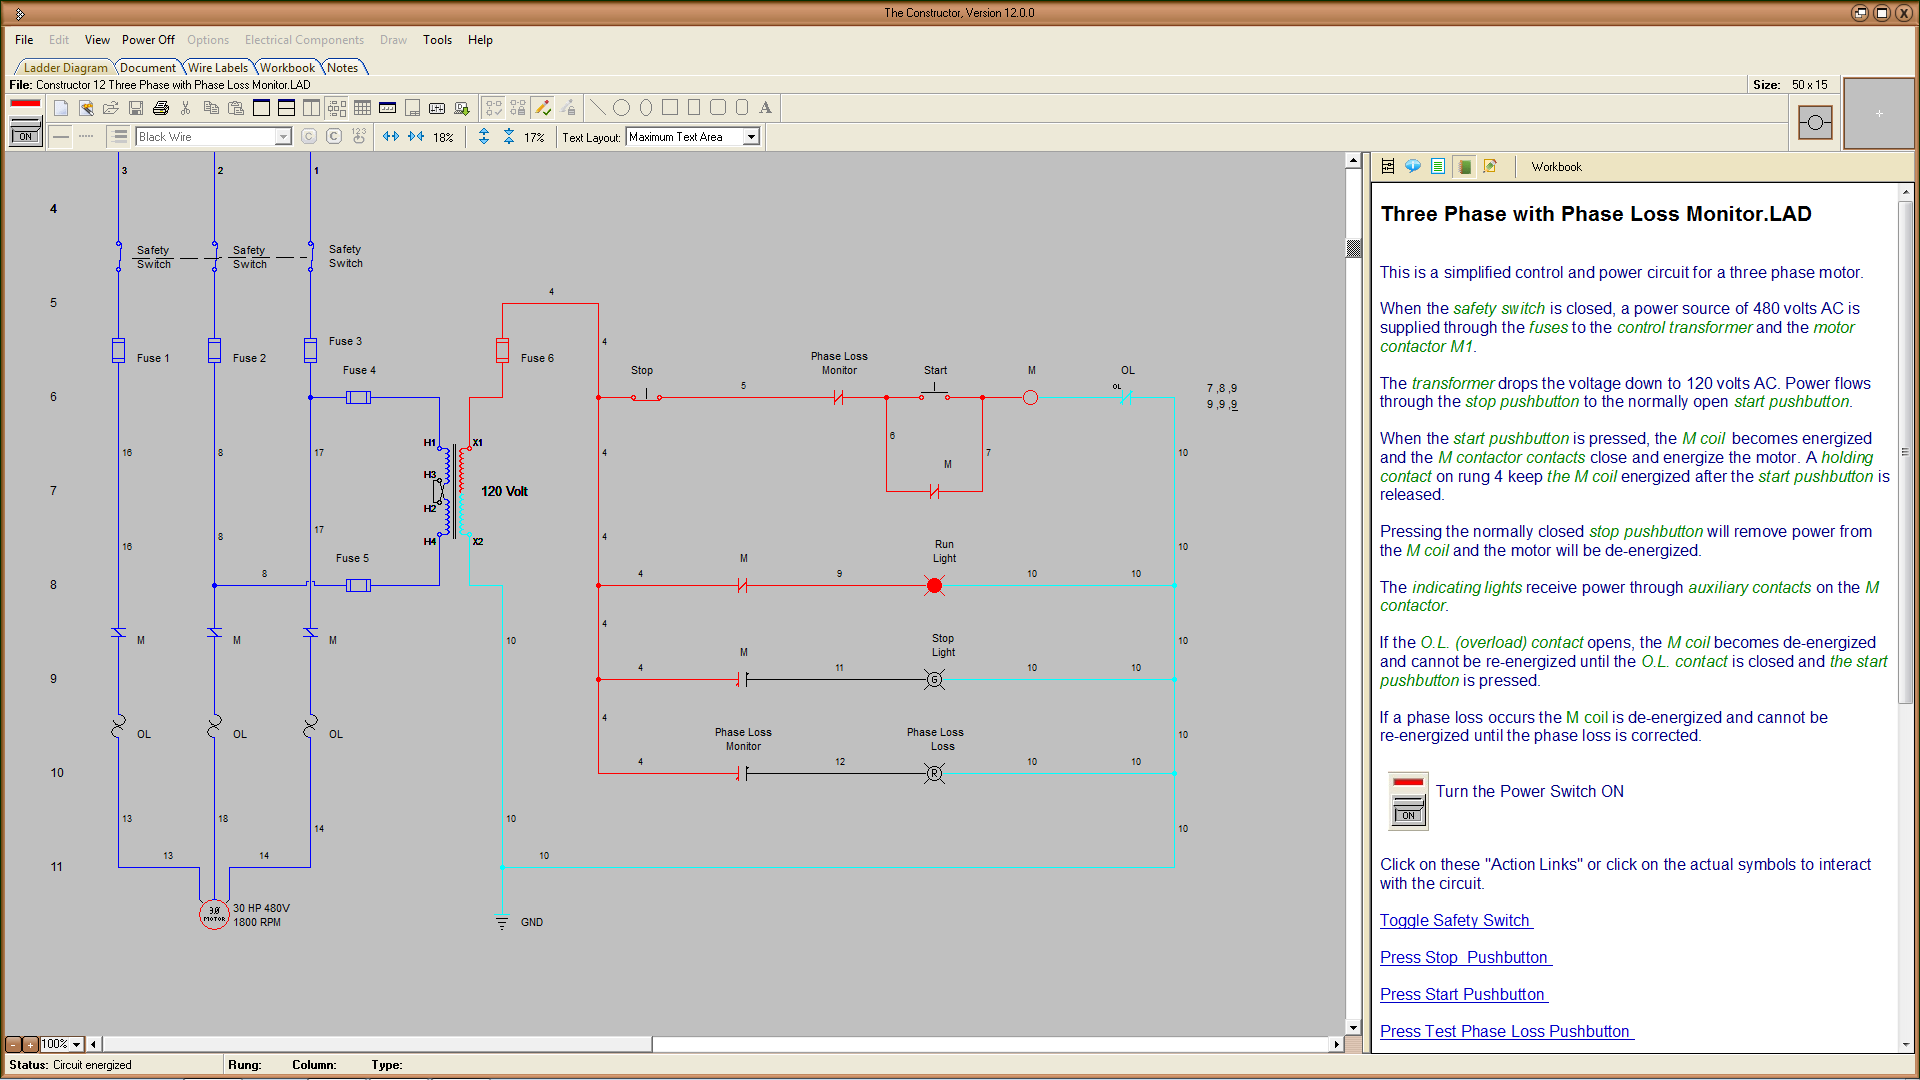 Miraculous Electrical Circuits Simulation Software Wiring Digital Resources Funiwoestevosnl